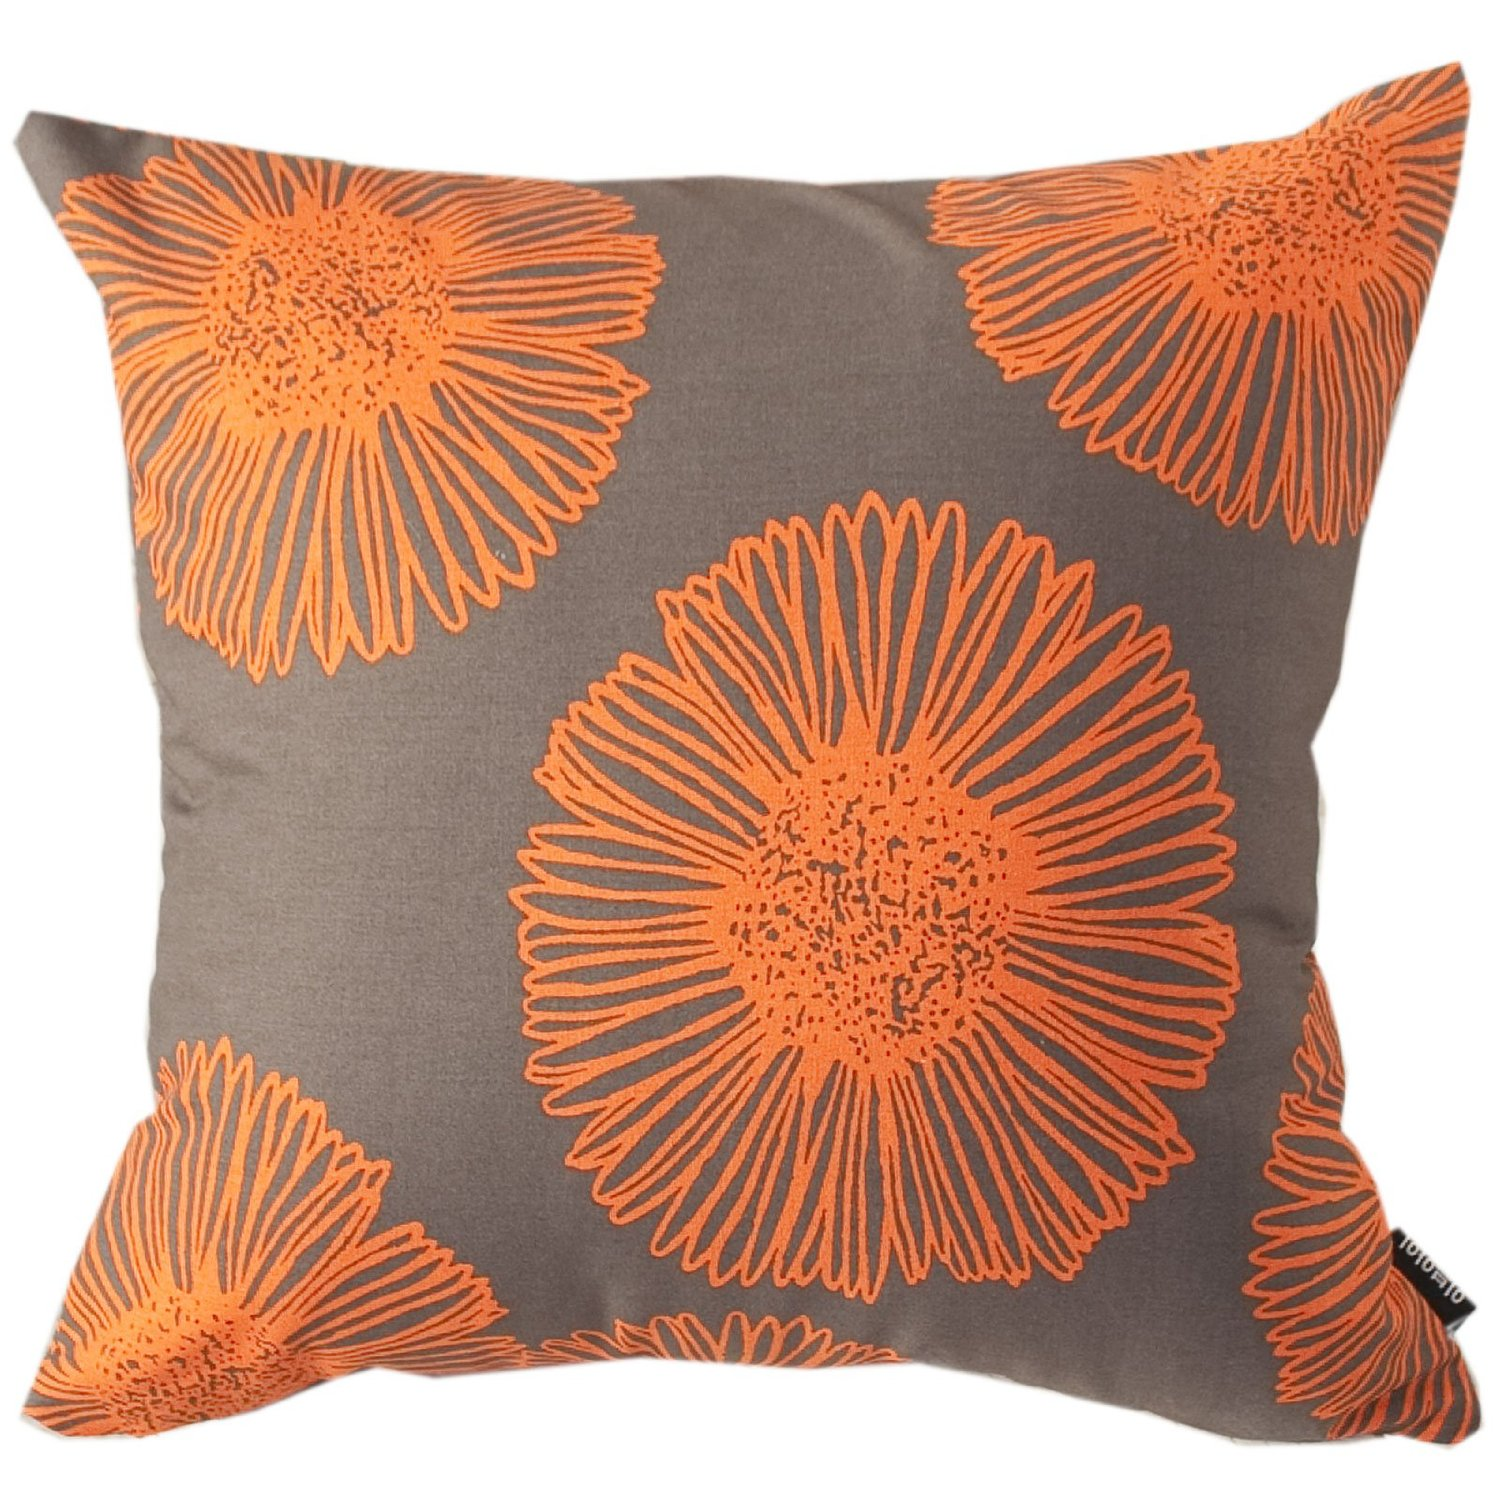 """Evei Big Orange Flowers Pattern Chocolate Color Cotton Home Decorative Throw Pillow Case / Cushion Cover Square 16"""" 18"""" 20"""" Choice (16""""x16""""inch(40x40cm))"""